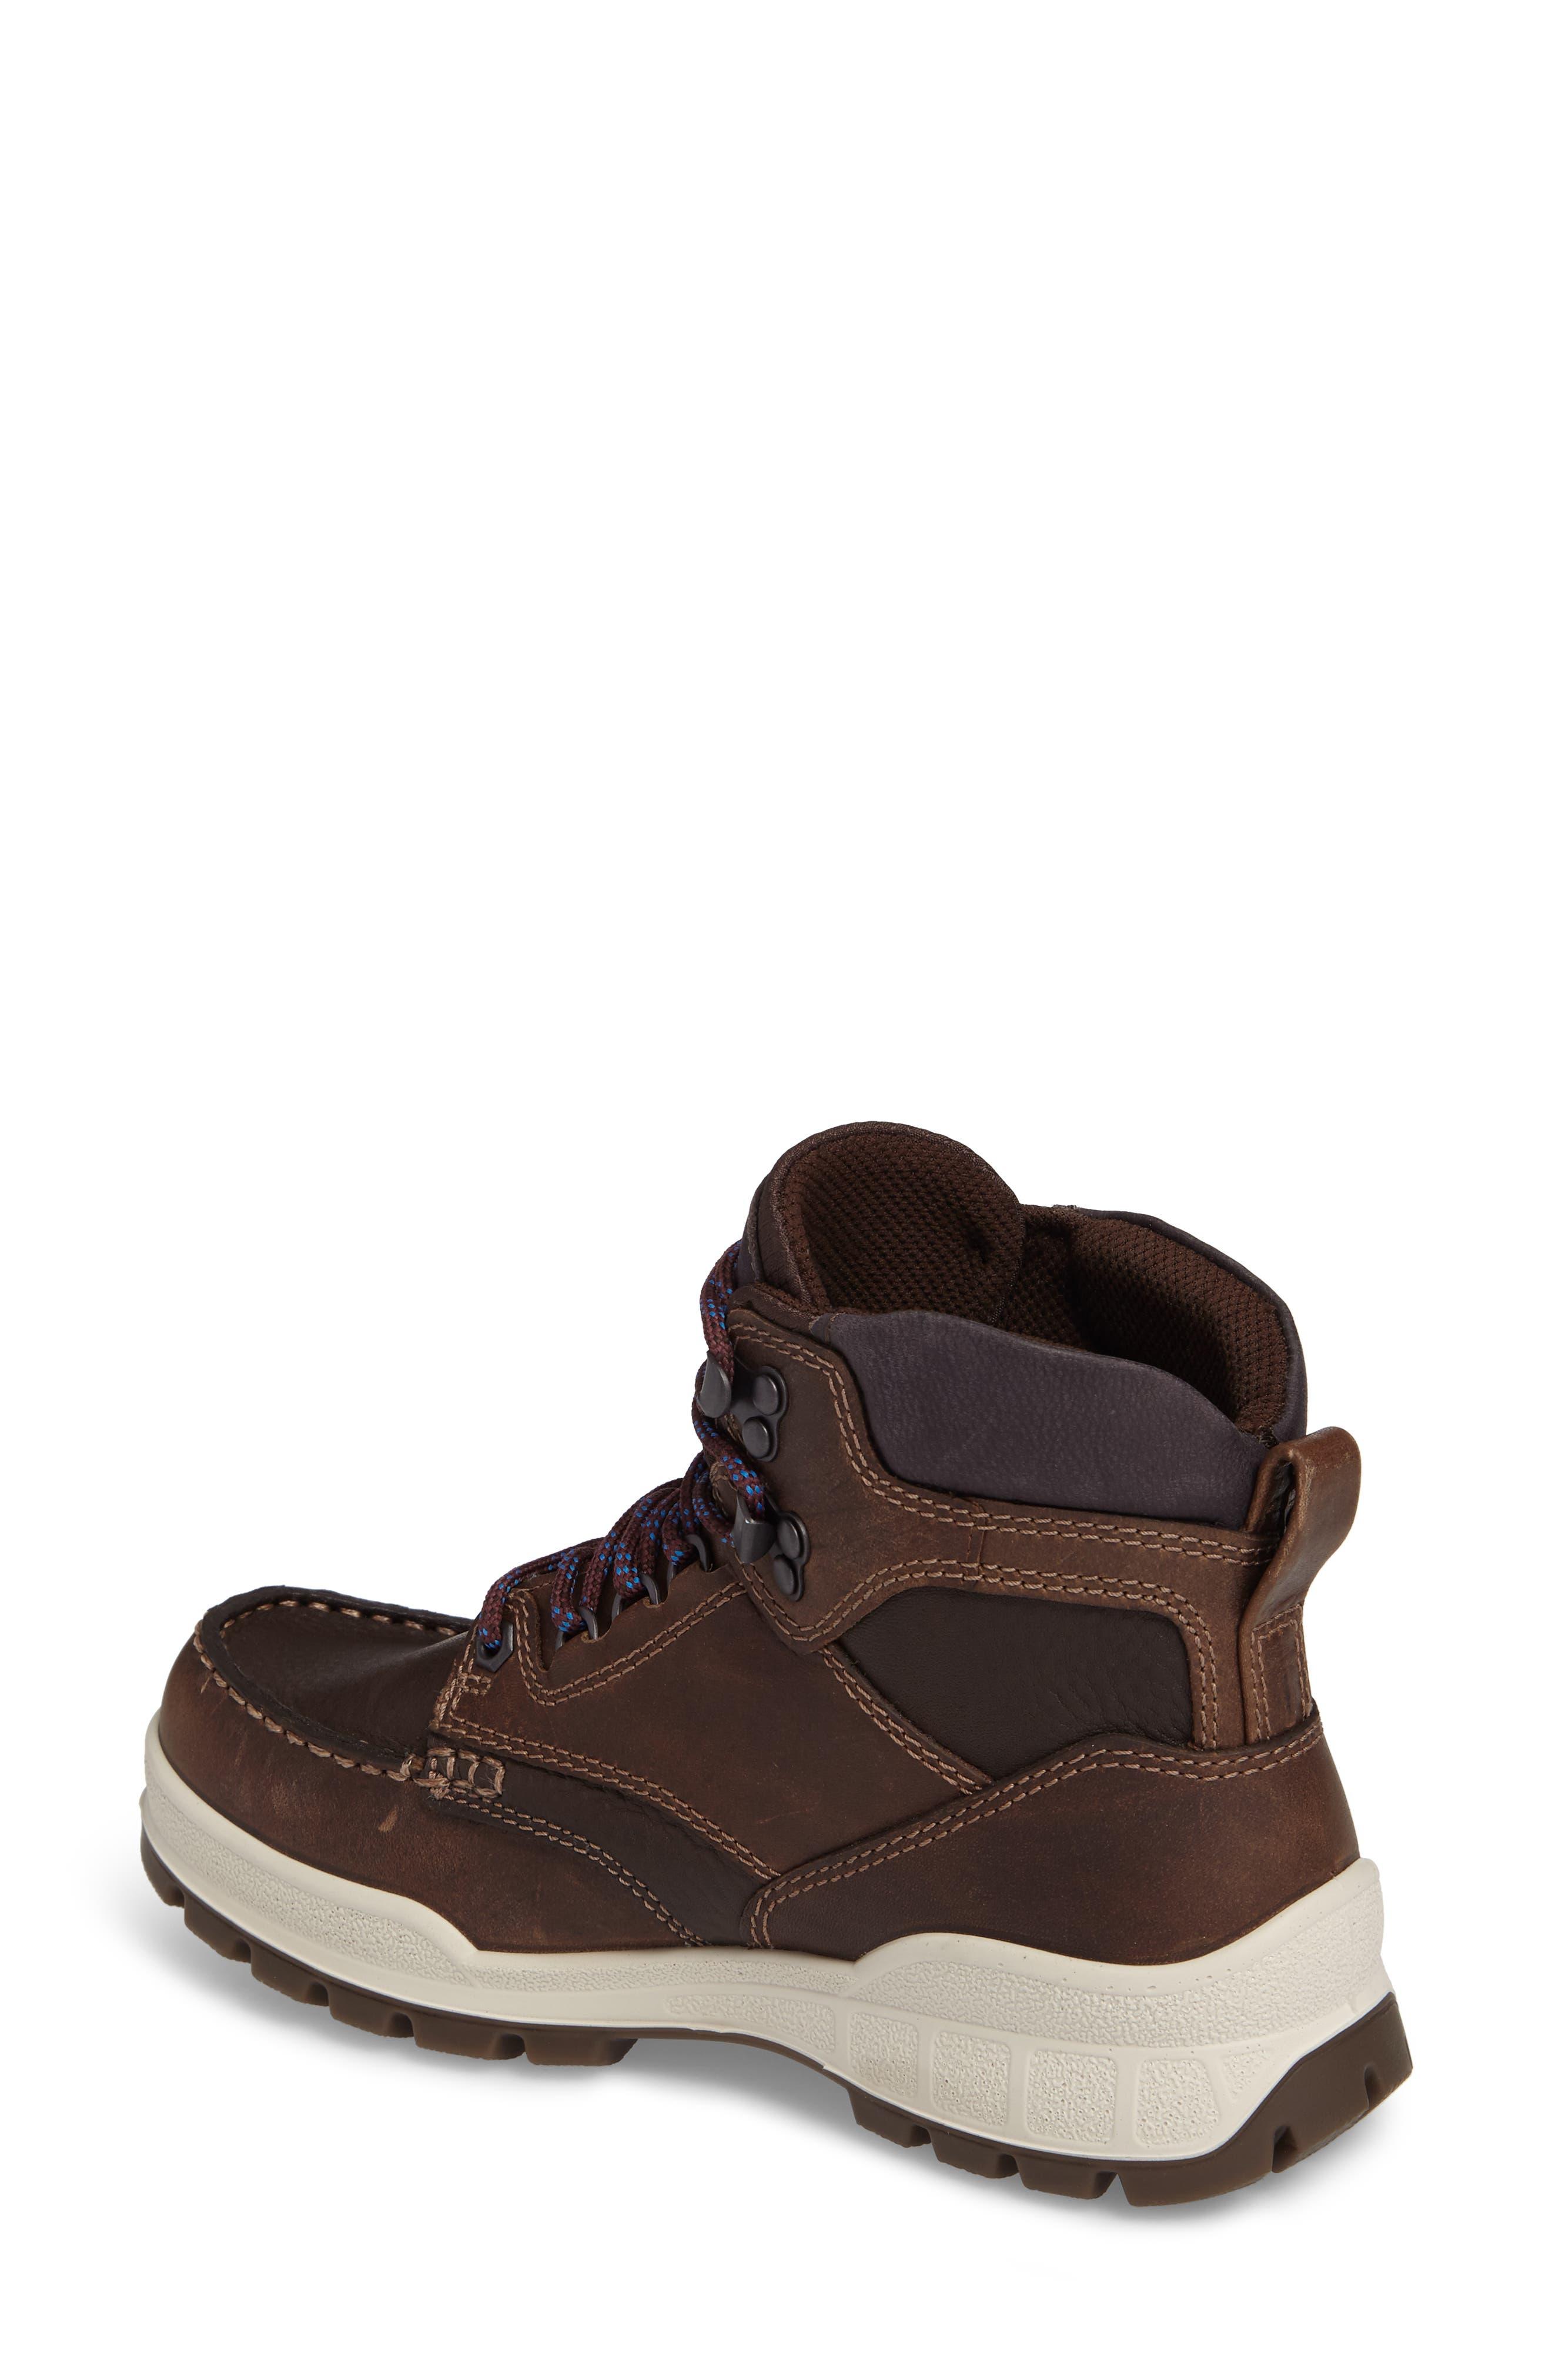 Track 25 Gore-Tex<sup>®</sup> Waterproof Hiking Boot,                             Alternate thumbnail 2, color,                             Cocoa Brown Leather